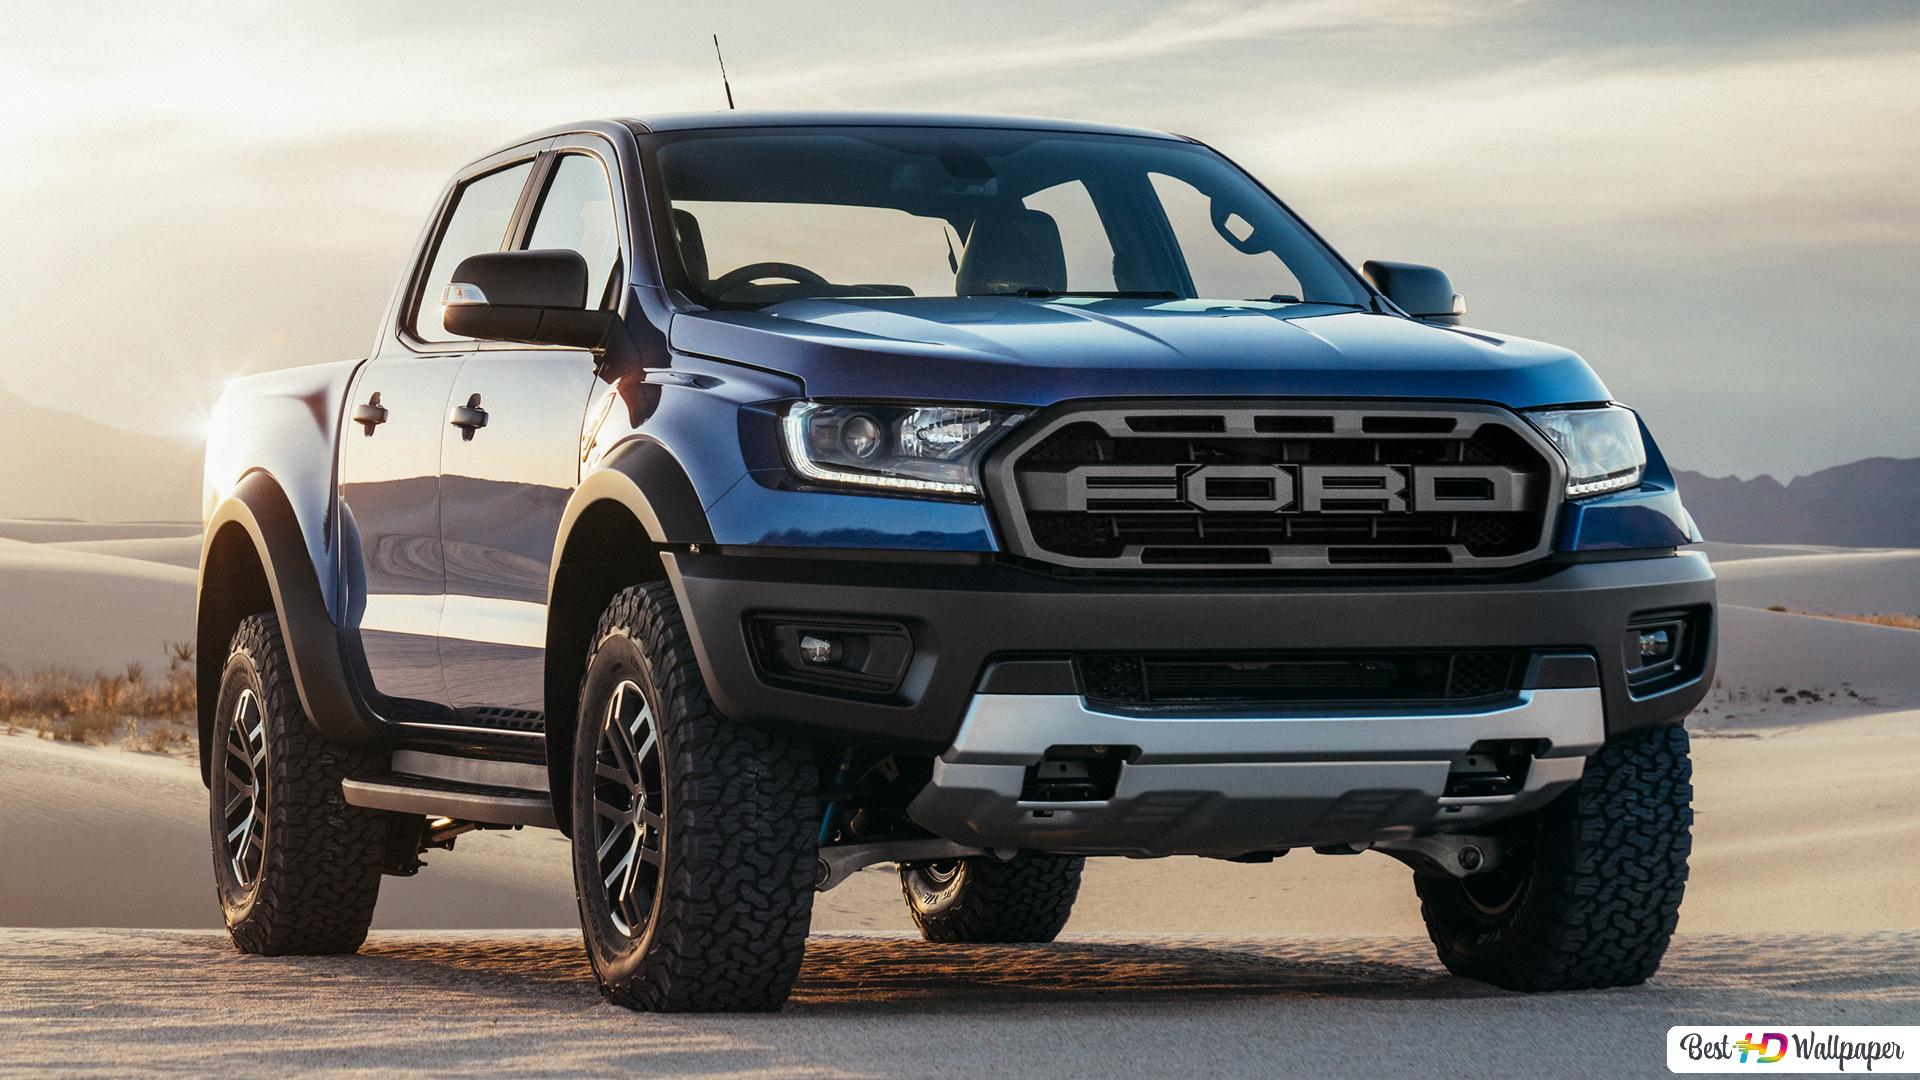 Ford Ranger Raptor Double Cab 2018 07 Hd Wallpaper Download